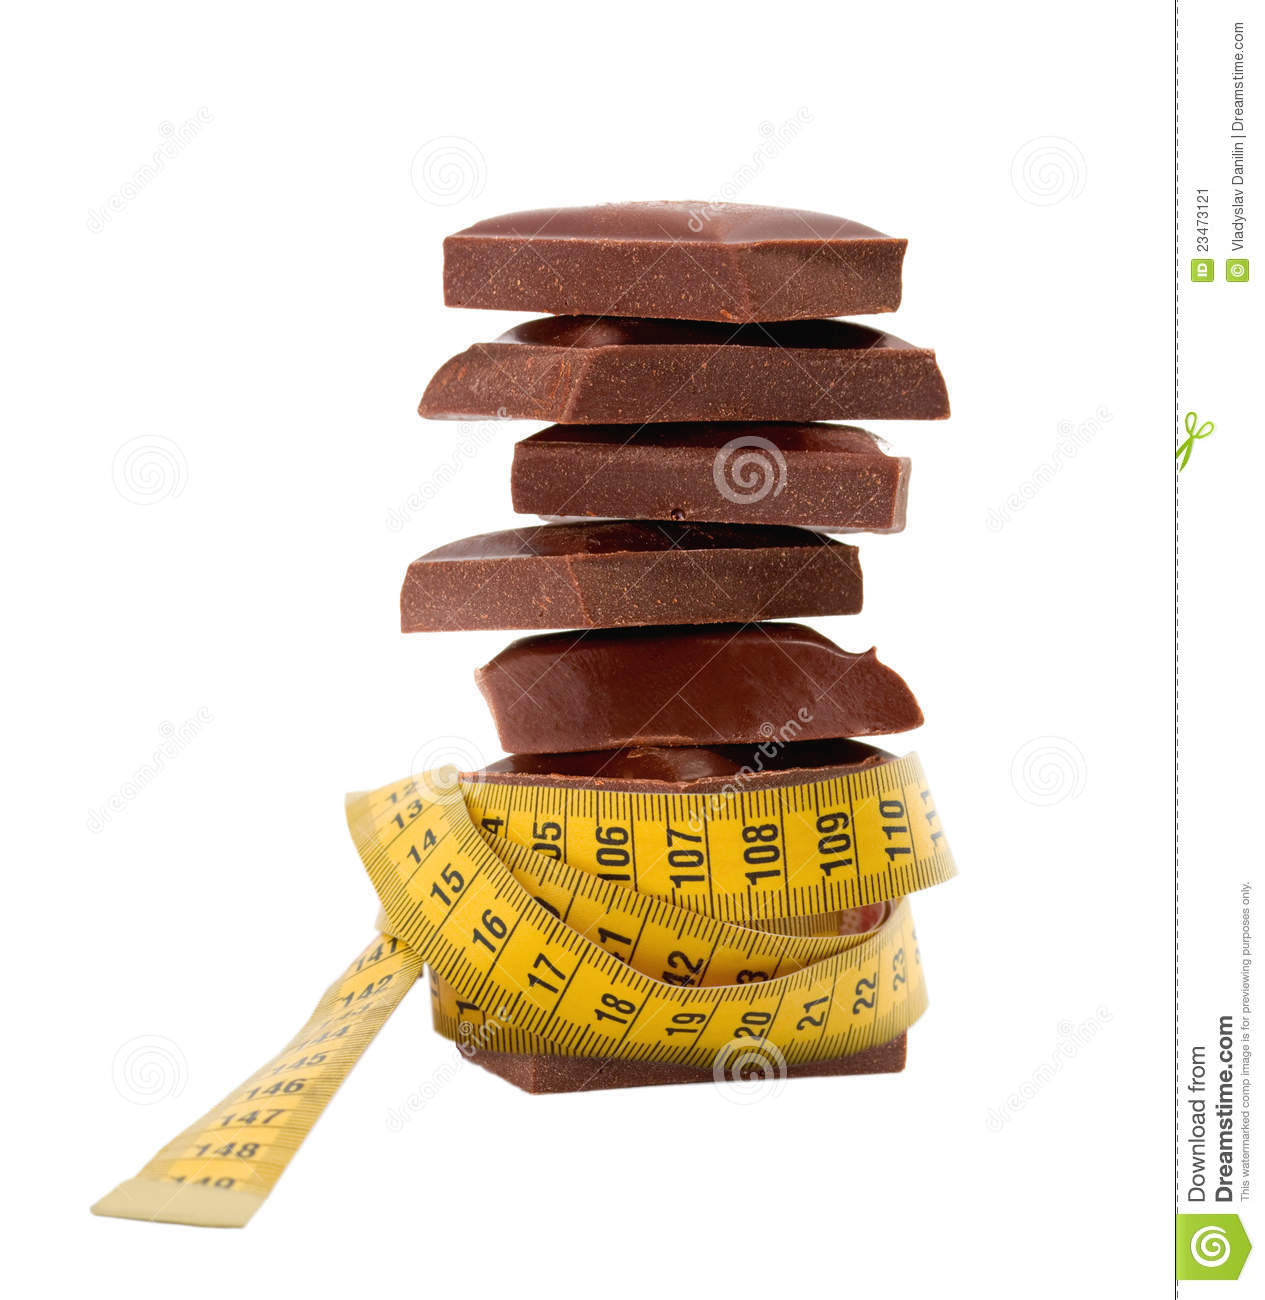 Chocolate Diet. Royalty Free Stock Photography - Image: 30108977